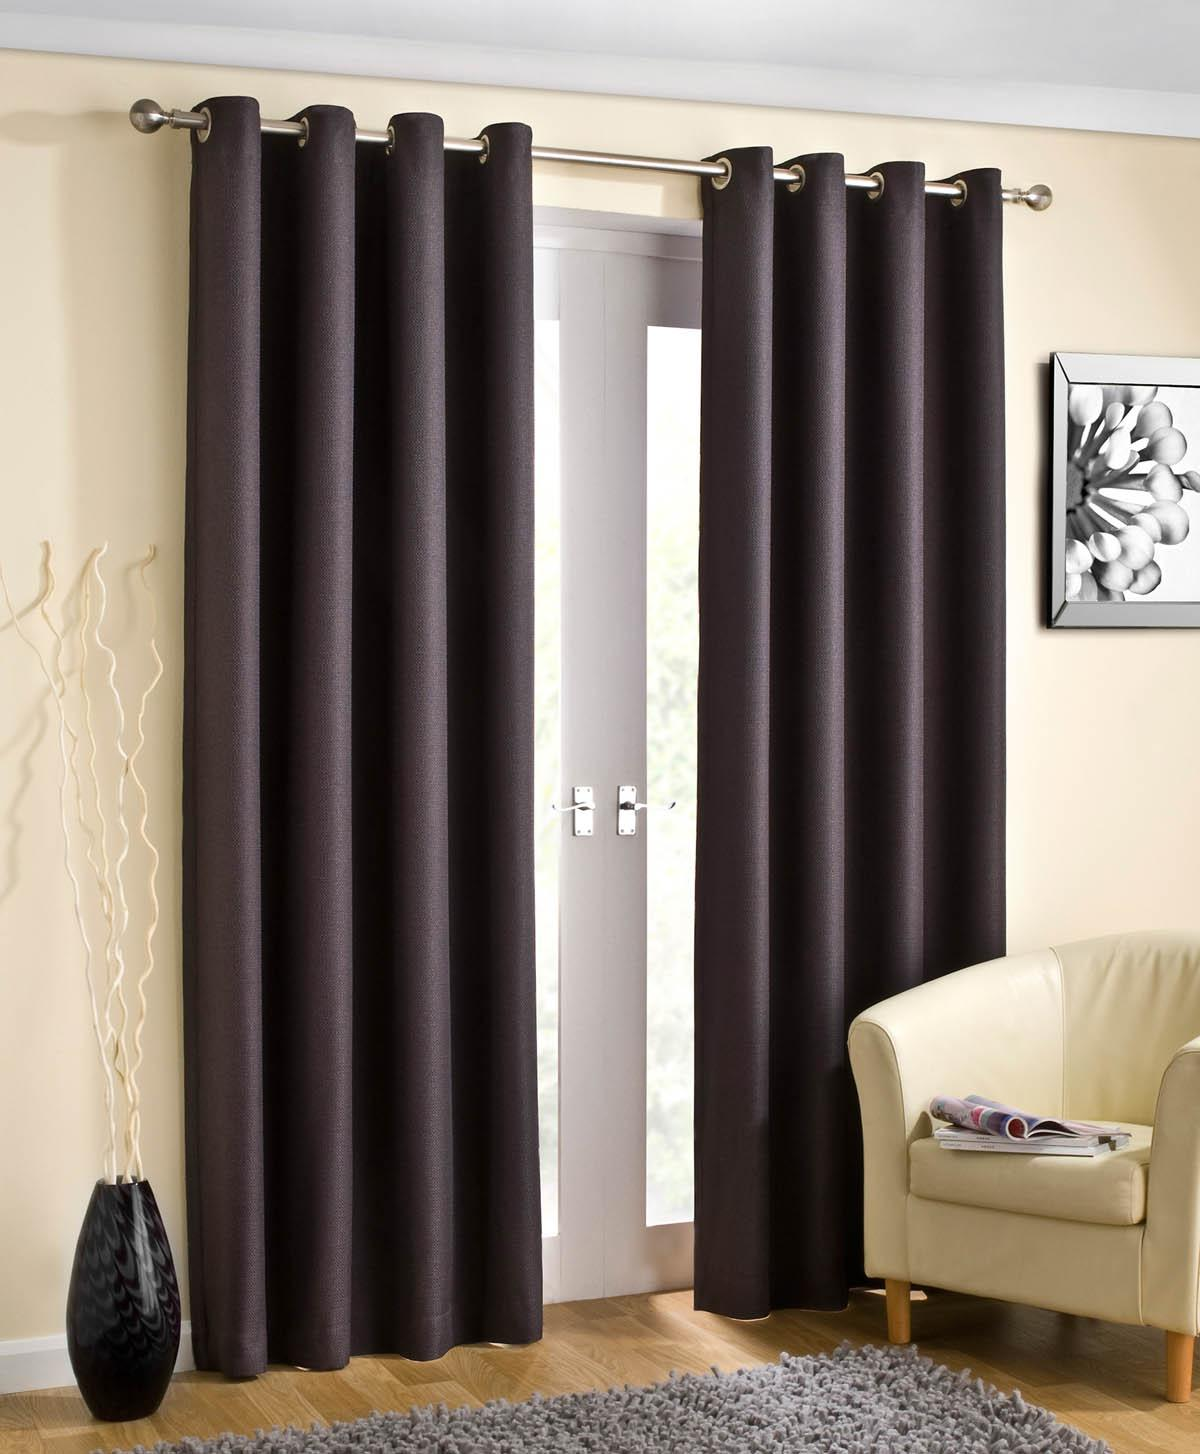 Marvelous Wetherby Ready Made Dim Out Eyelet Curtains